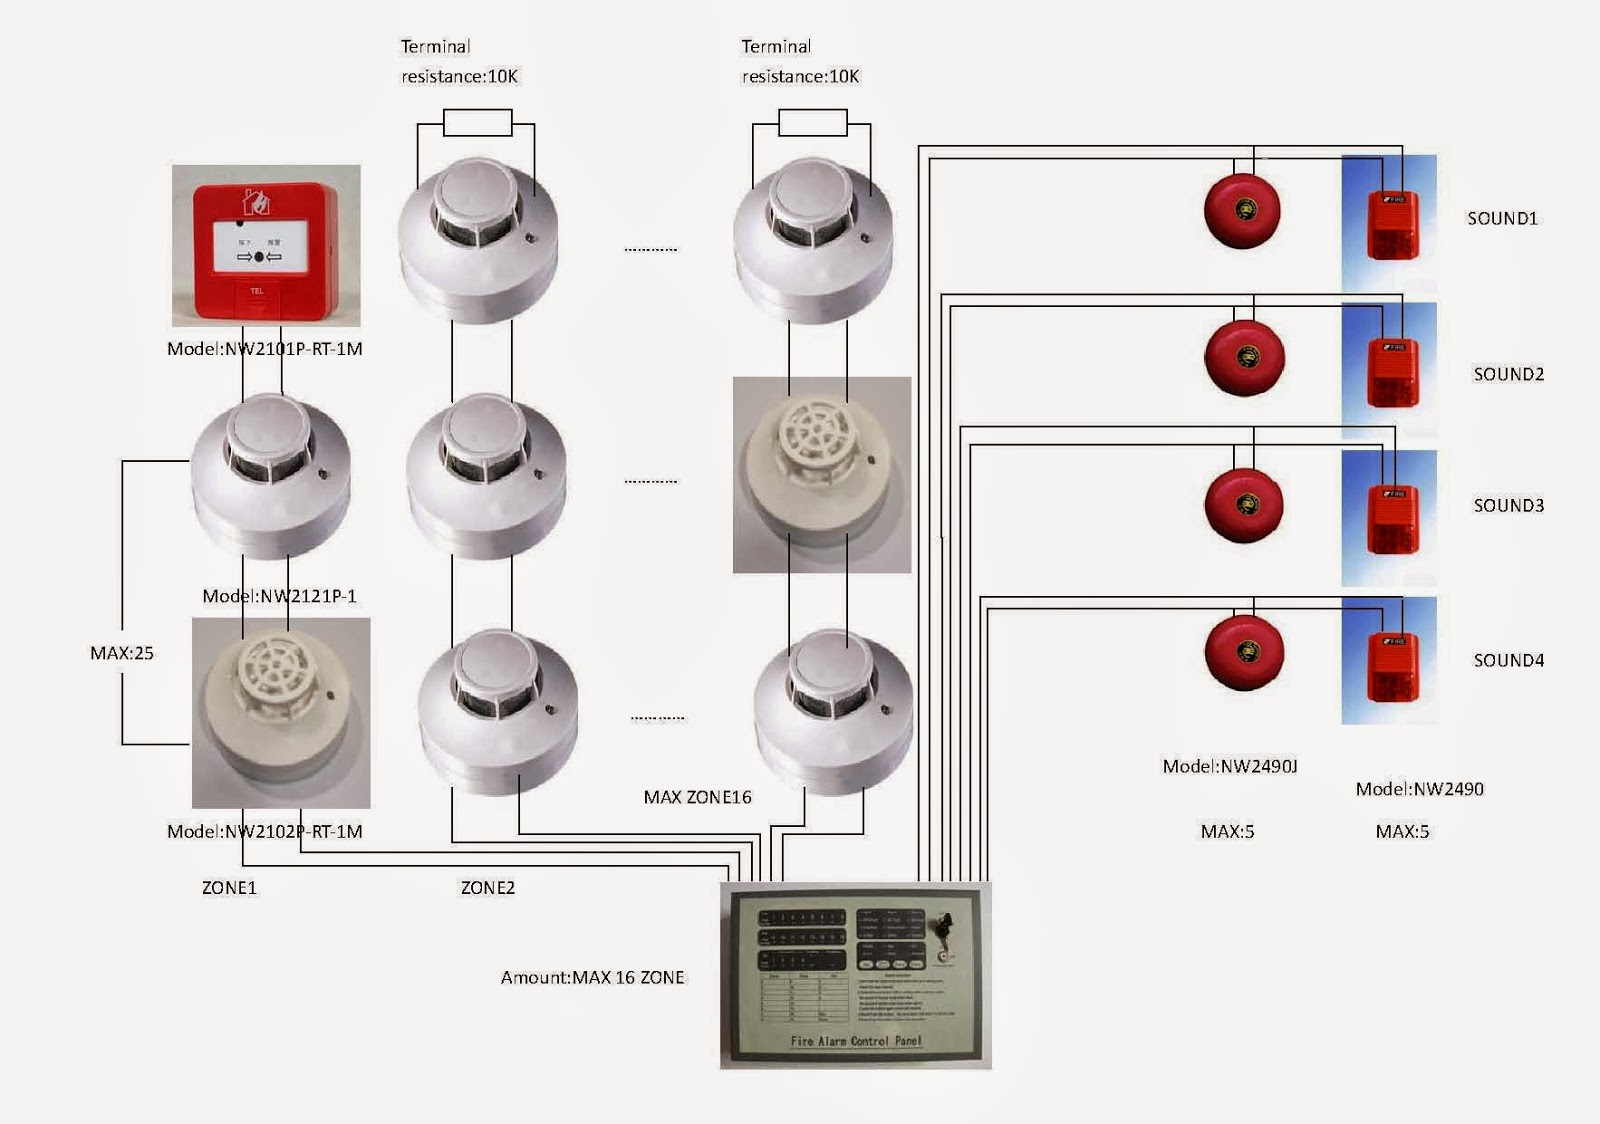 Conventional_Control_Pan+Zone+Style fire alarm control panel wikipedia readingrat net honeywell fire alarm system wiring diagram at edmiracle.co